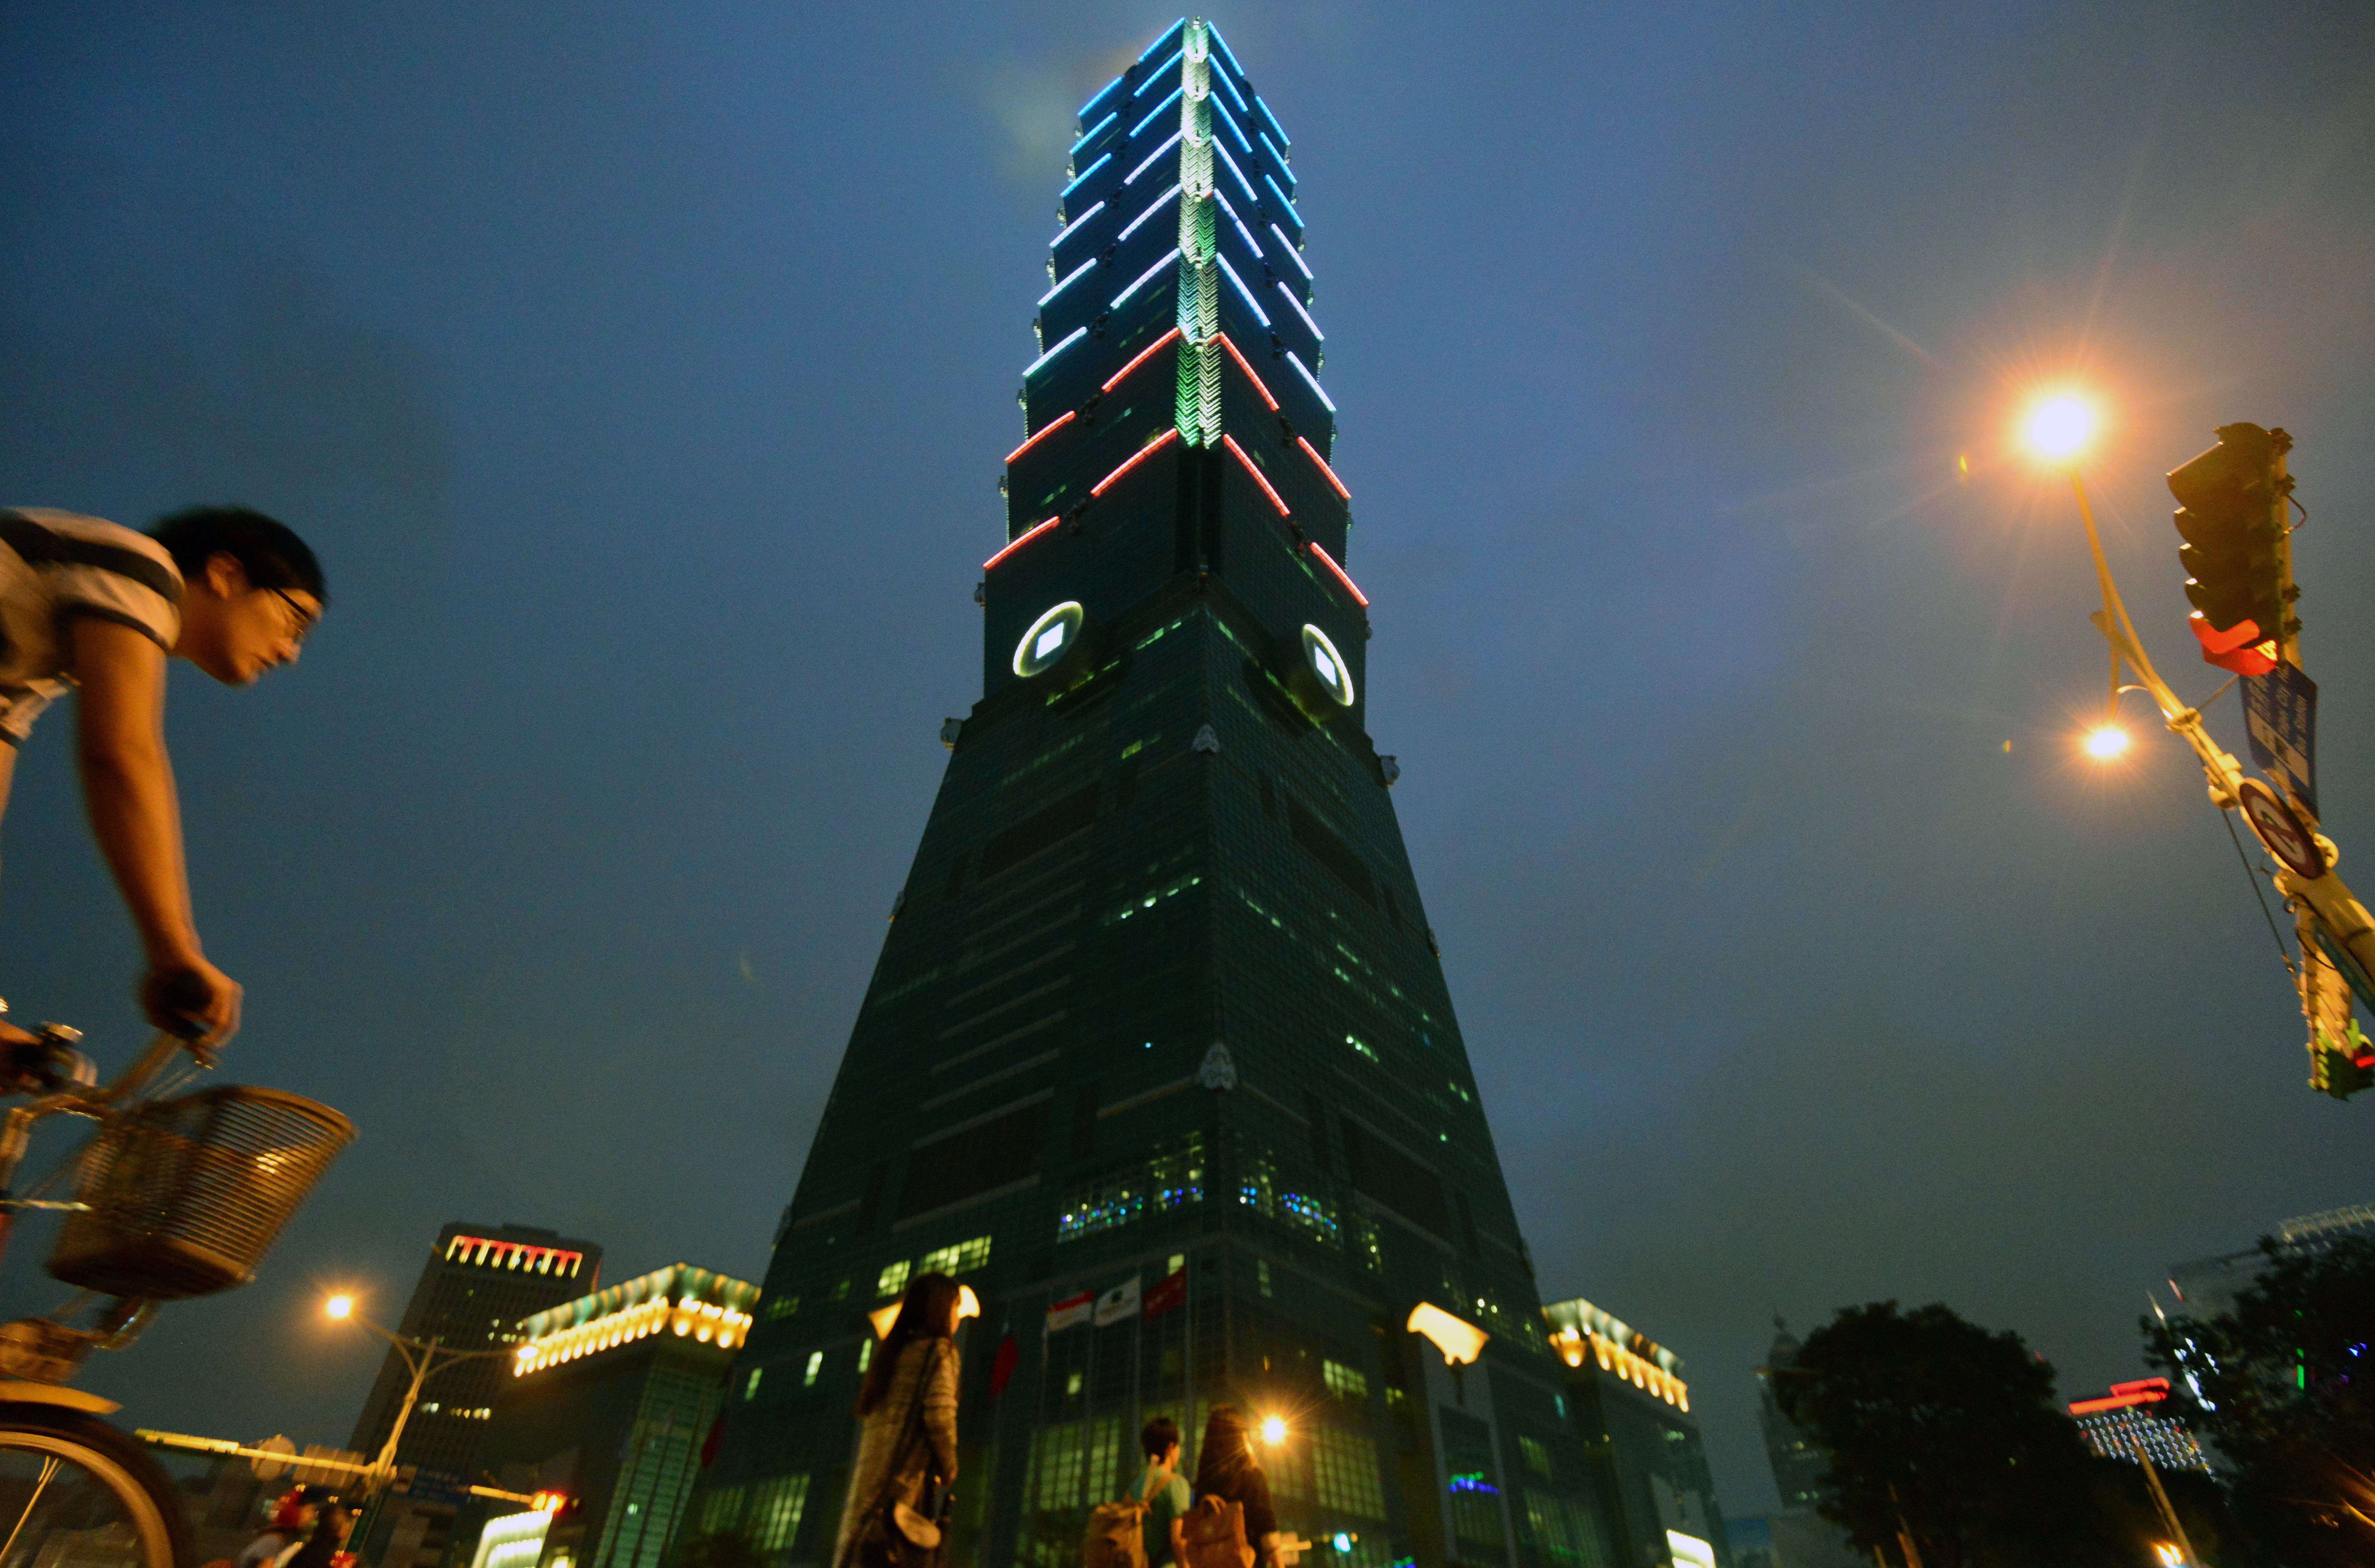 A man rides next to the Taipei 101 building in Taipei, Taiwan, as it lit up with the colors of the French flag on Nov. 14, 2015.